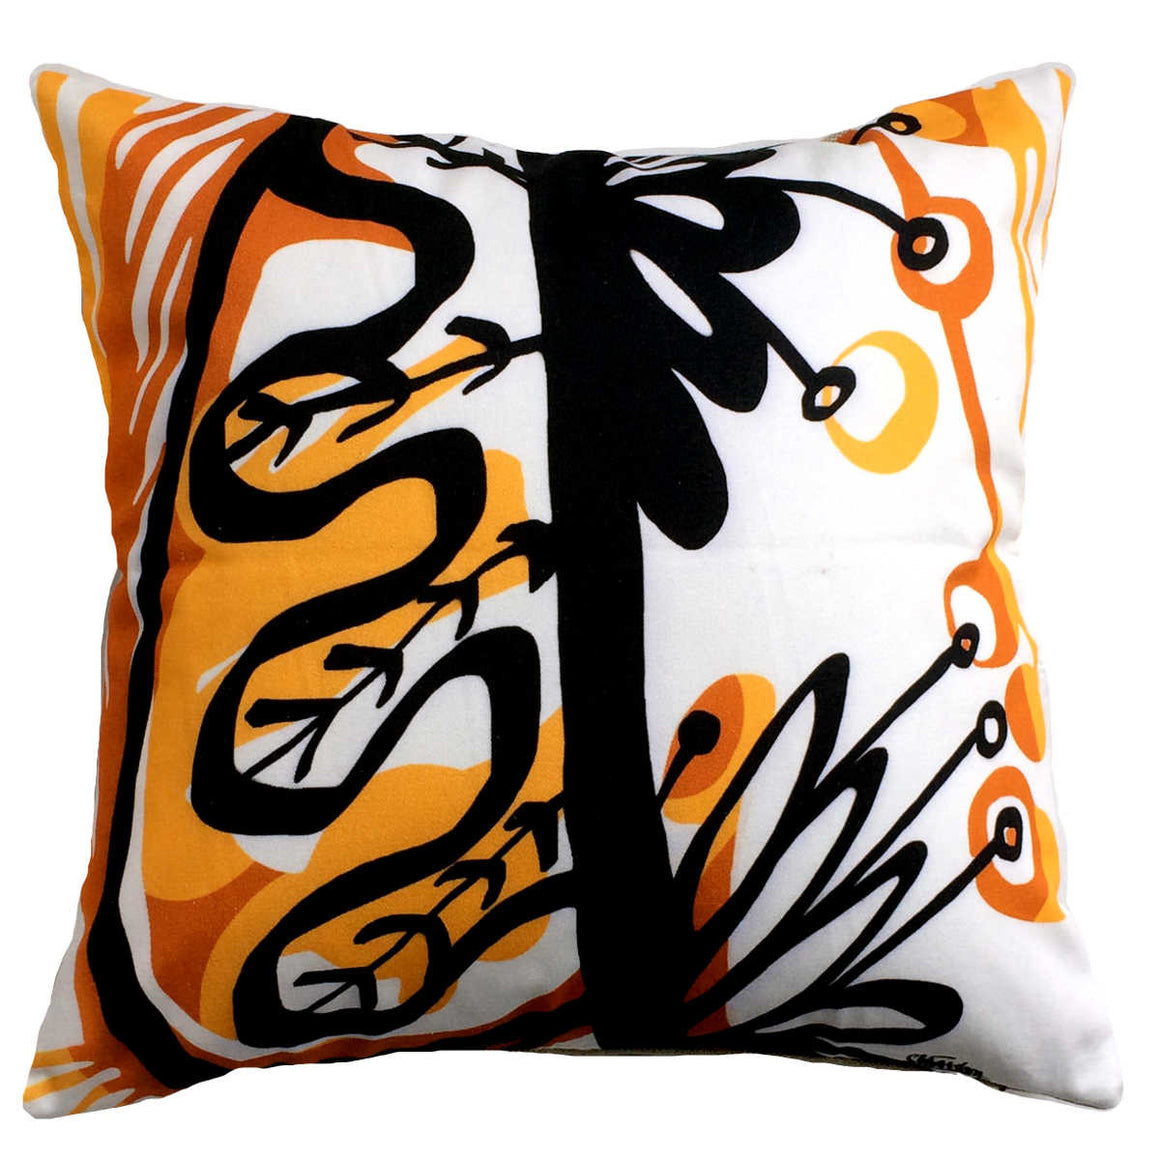 Feuillage (Foliage) decorative pillow cotton  twill front